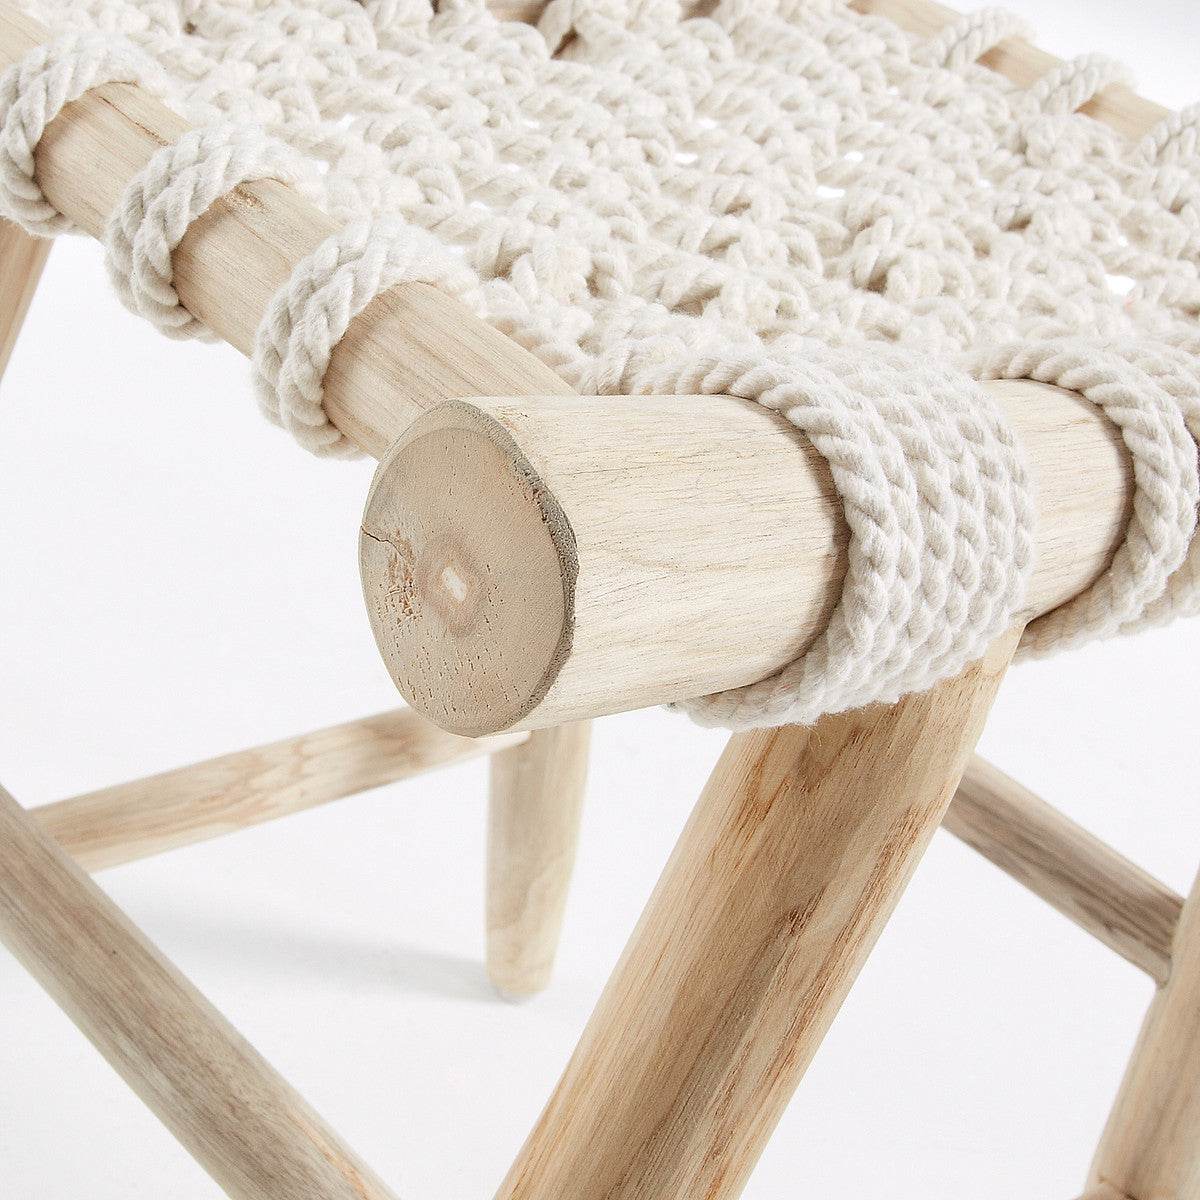 Eclectic Footrest teak wood & white cotton rope